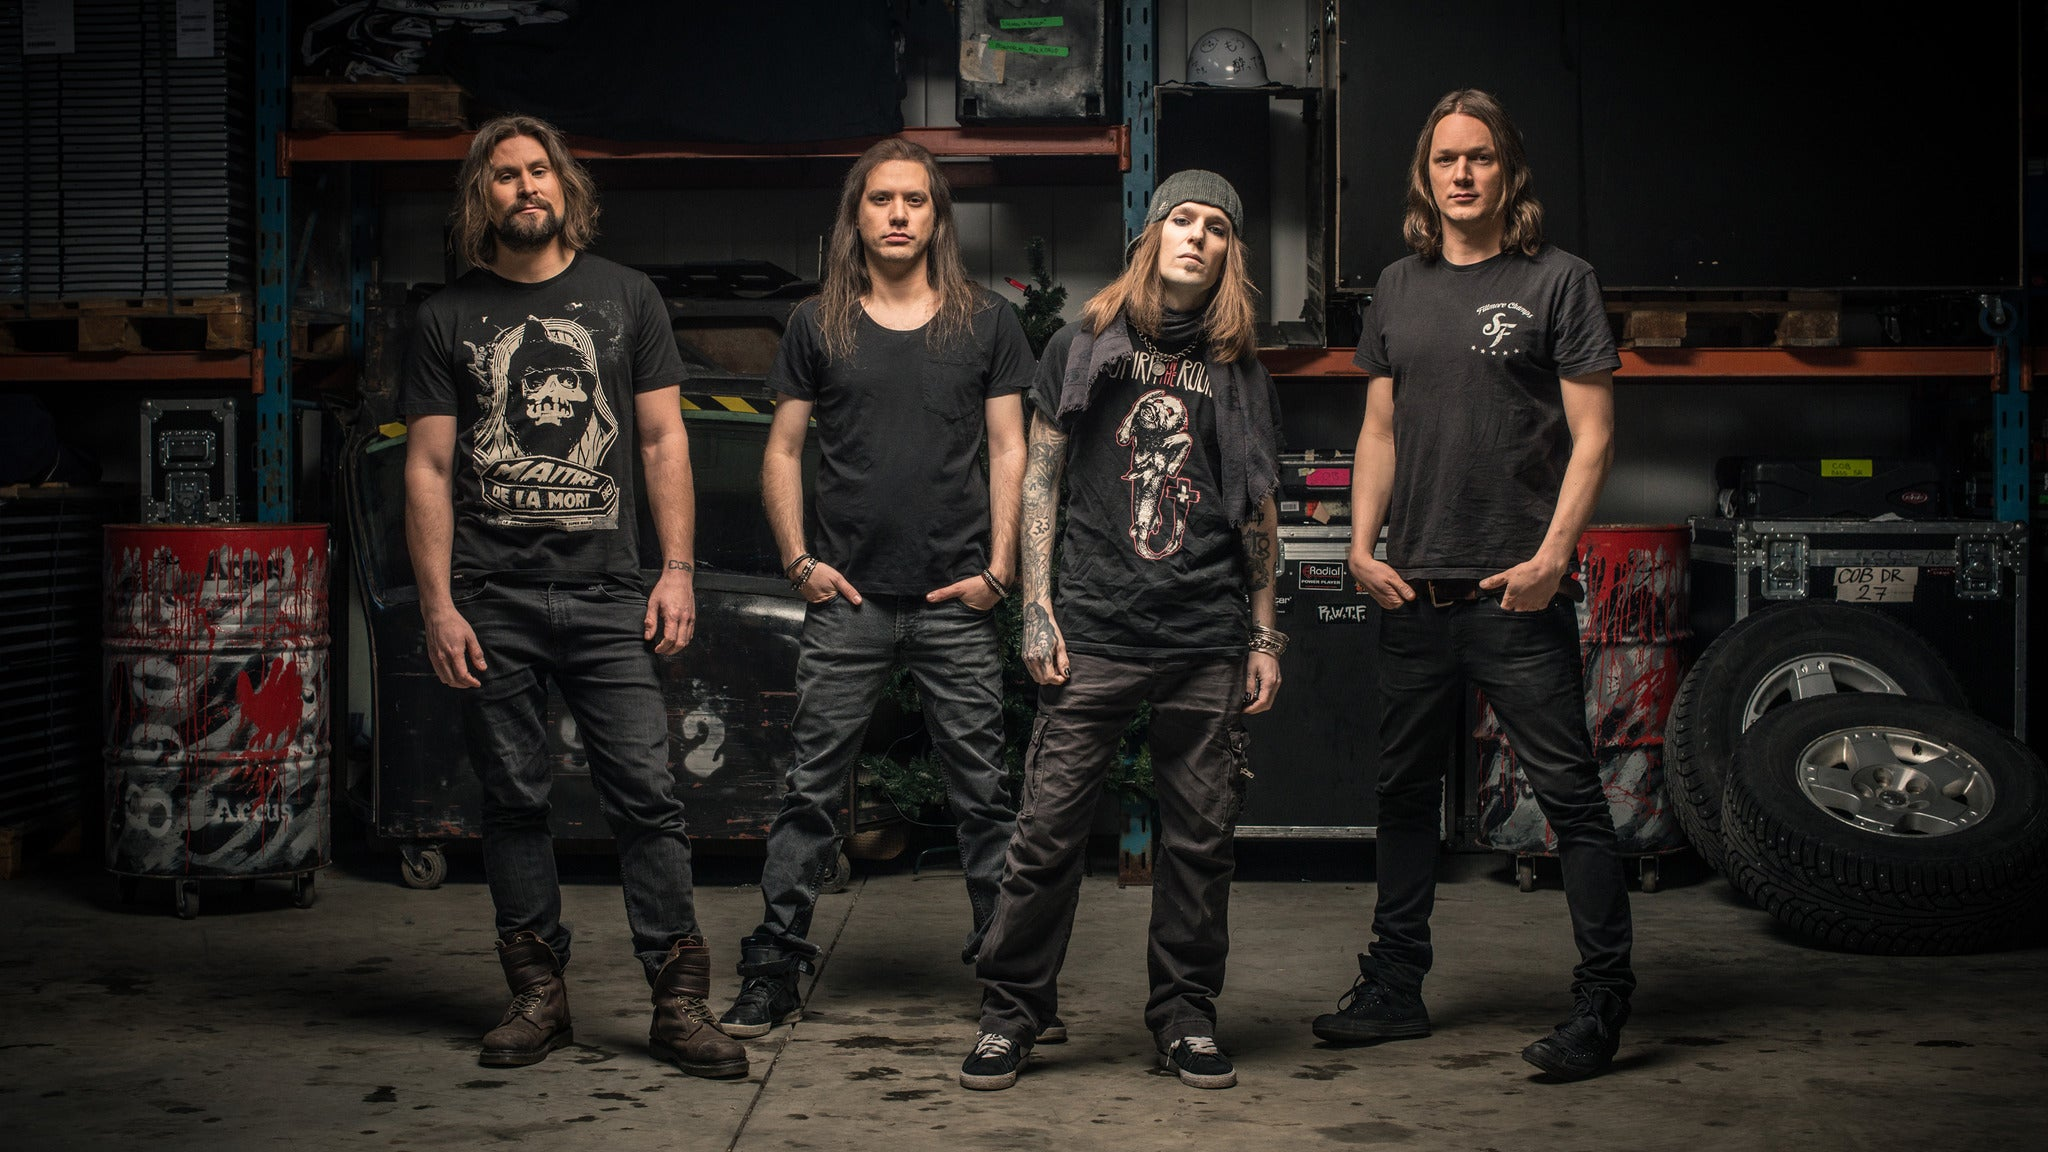 Children of Bodom, Carach Angren, Lost Society, Uncured